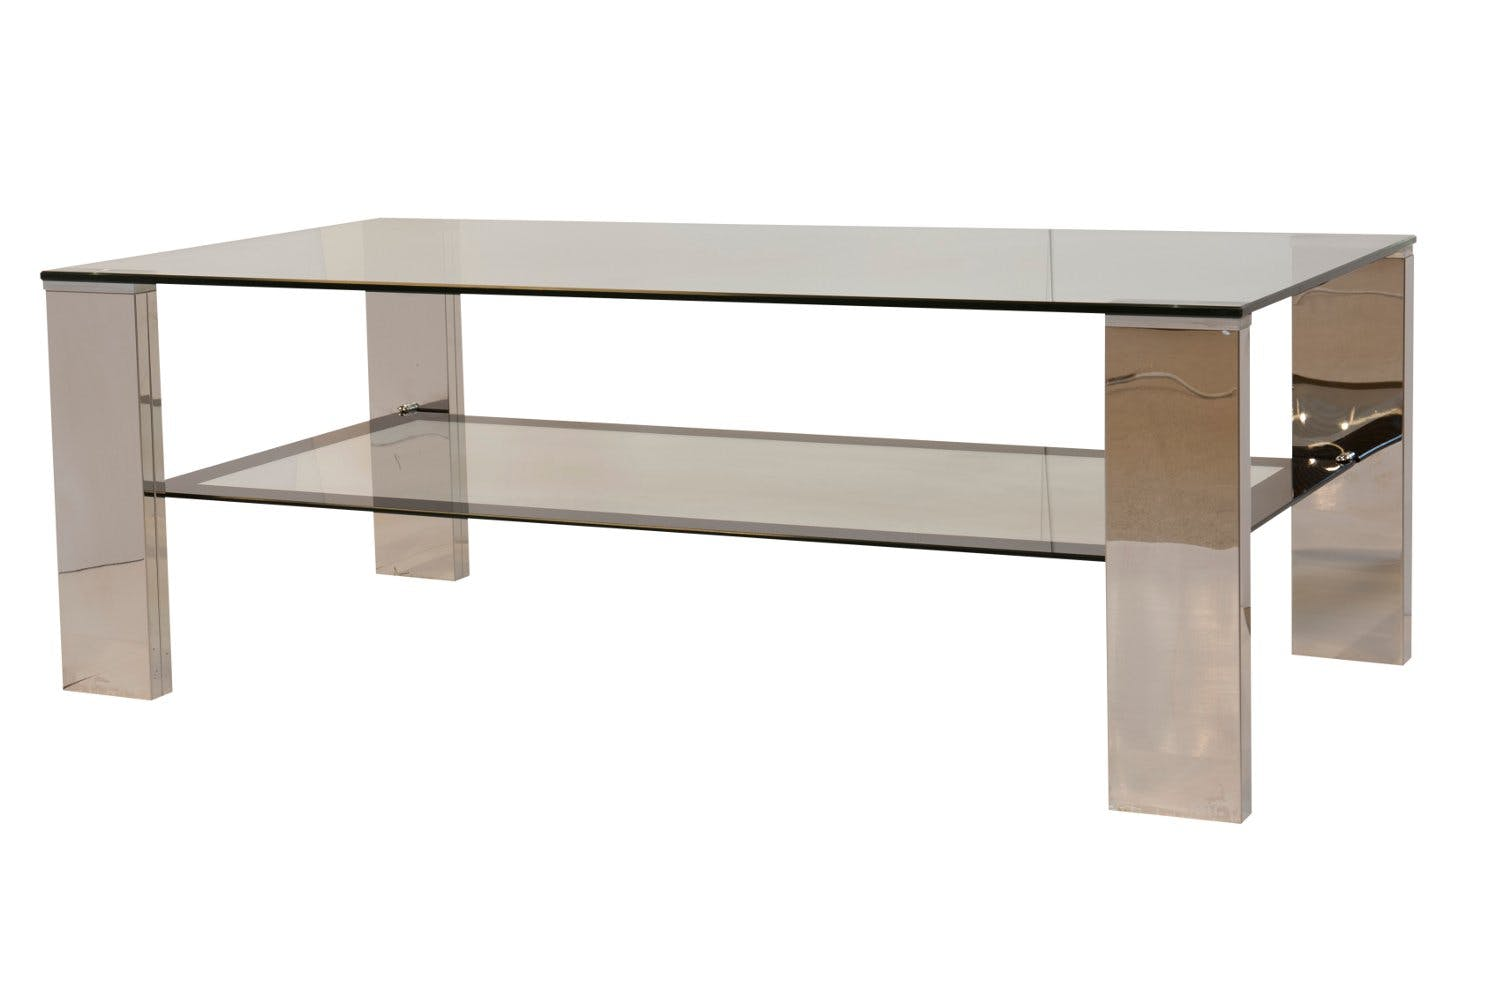 Neptune coffee table shop at harvey norman ireland Tables for coffee shop